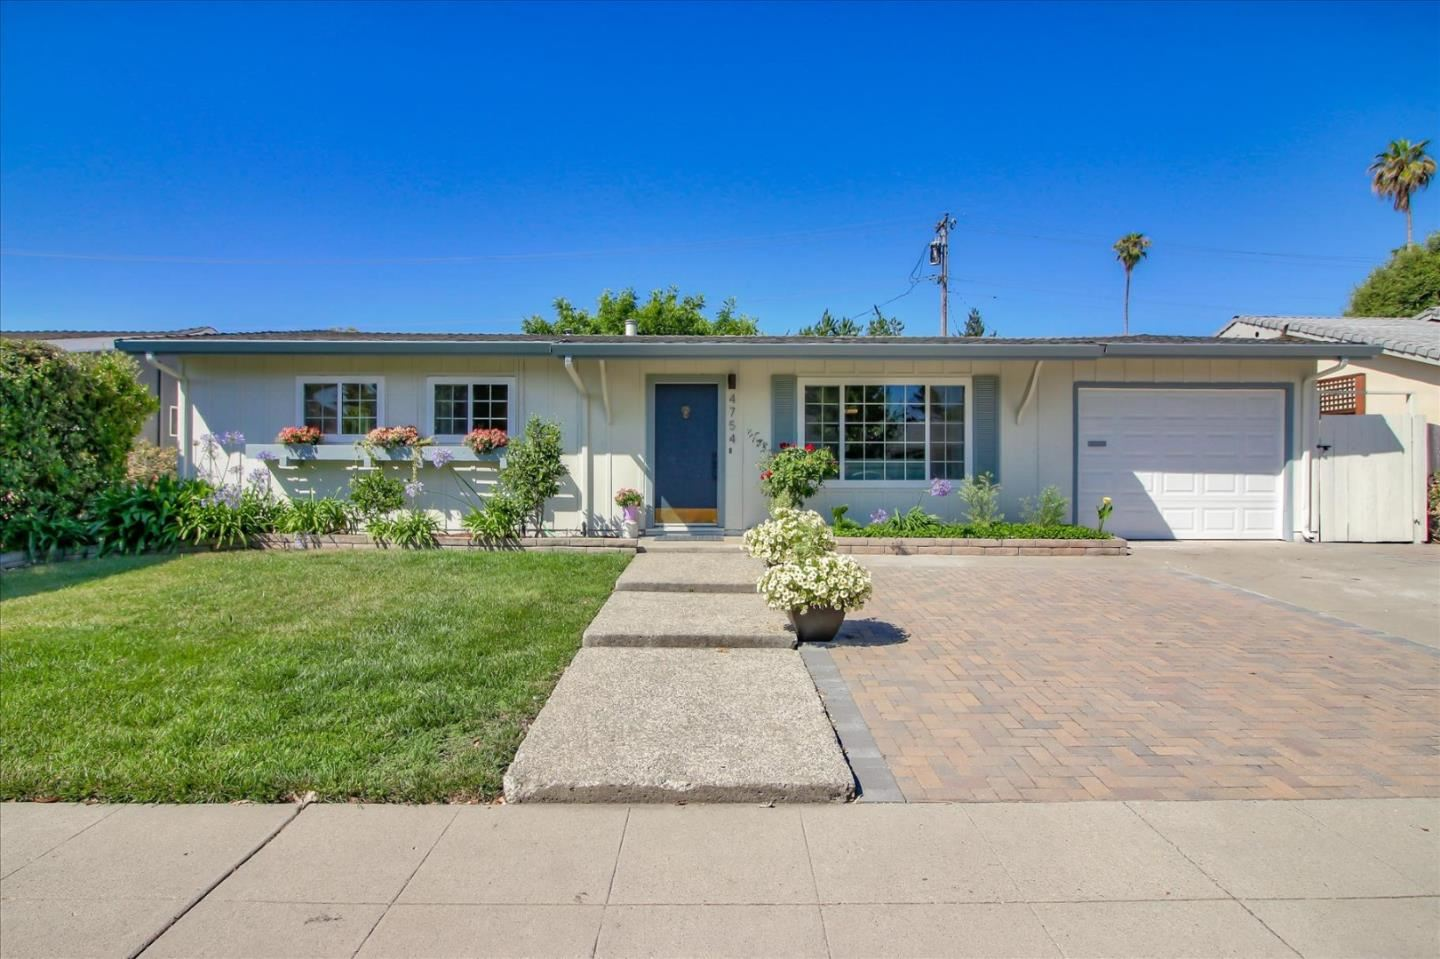 Photo for 4754 Parkwest DR, SAN JOSE, CA 95130 (MLS # ML81798968)